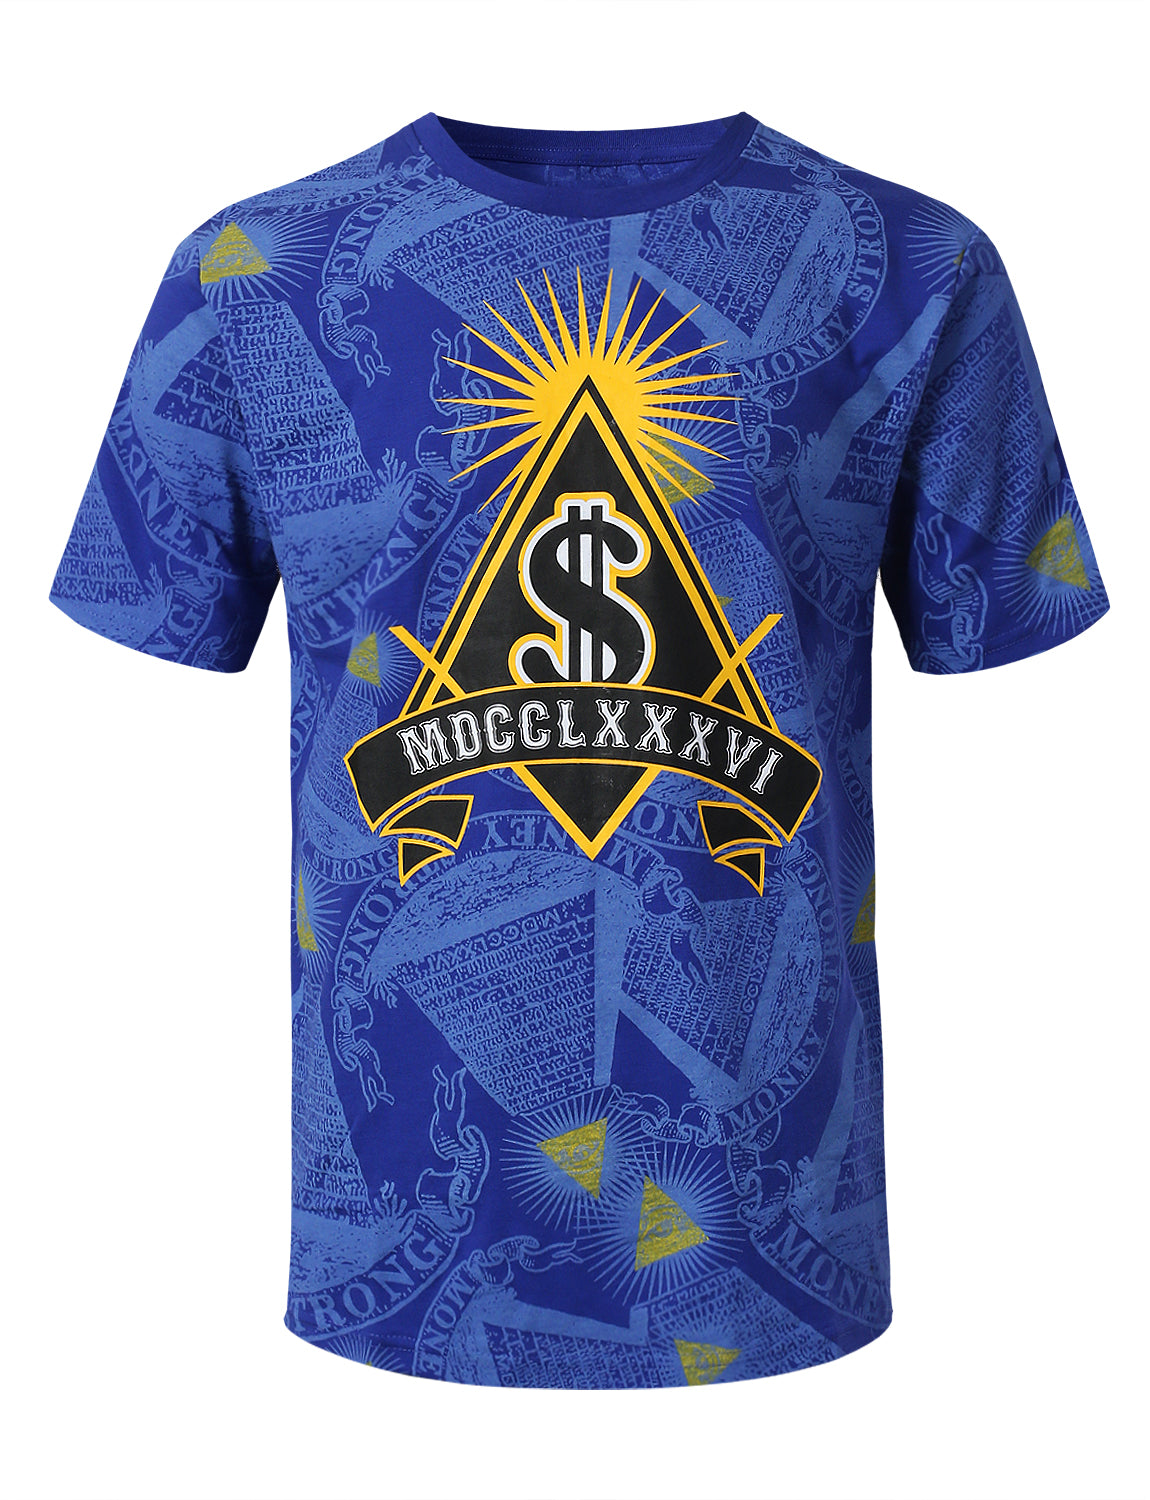 ROYAL Money All Over Graphic Print T-shirt - URBANCREWS